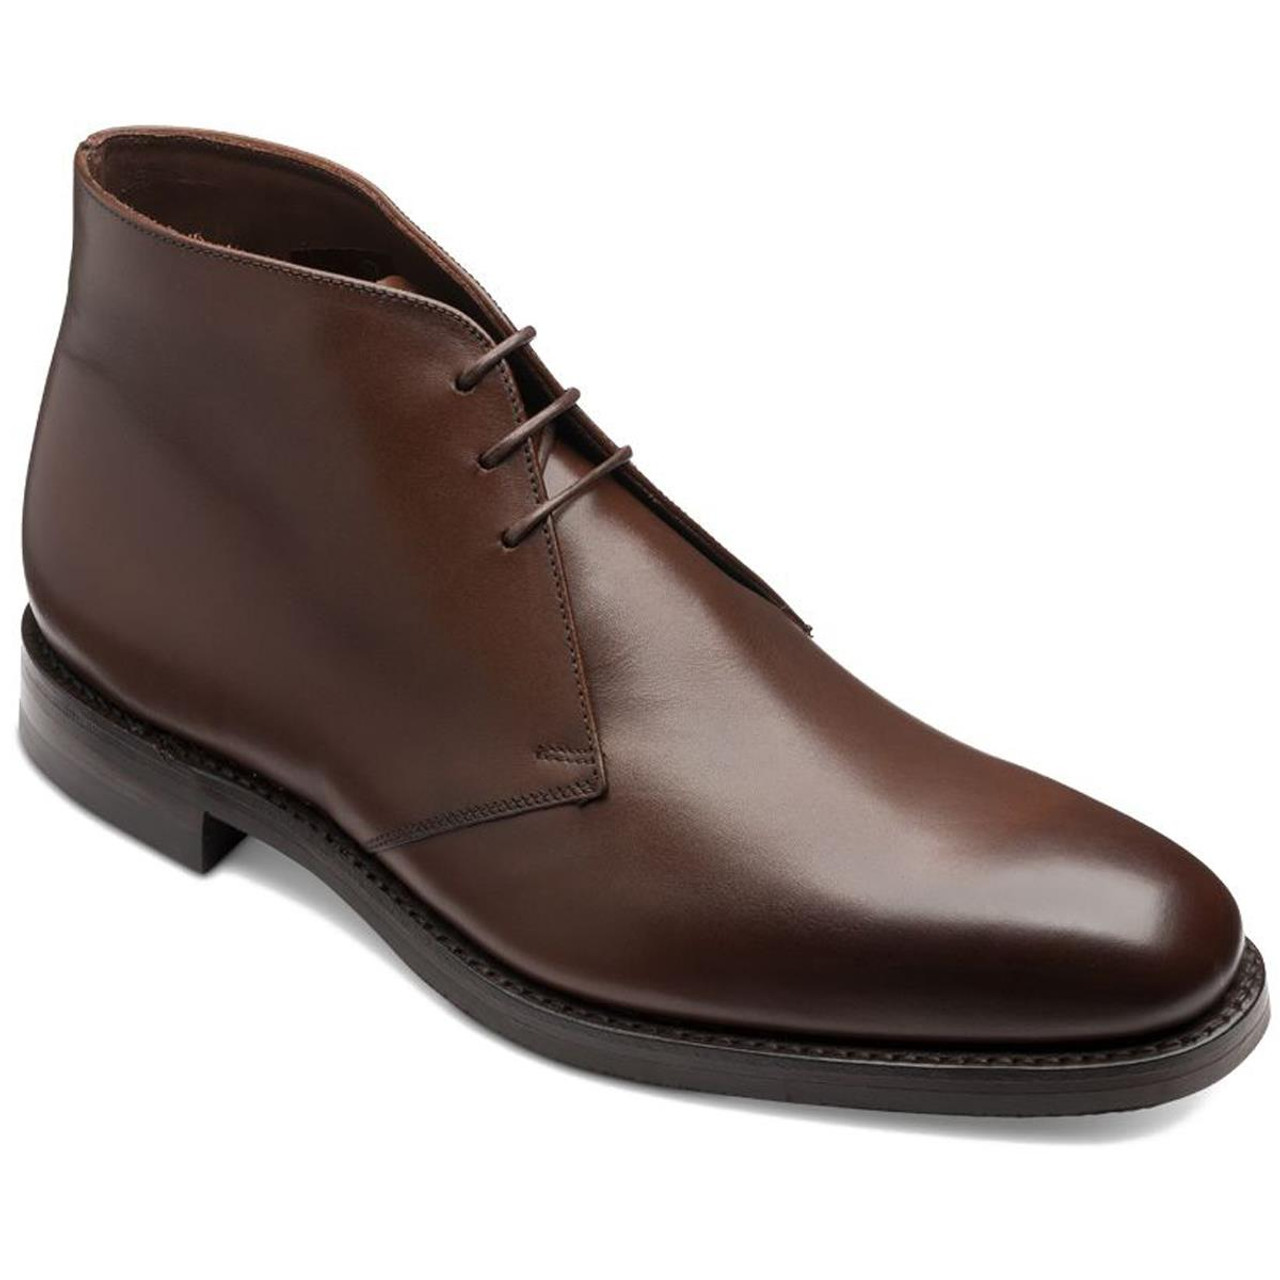 Dark Brown Loake Mens Pimlico Chukka Boots